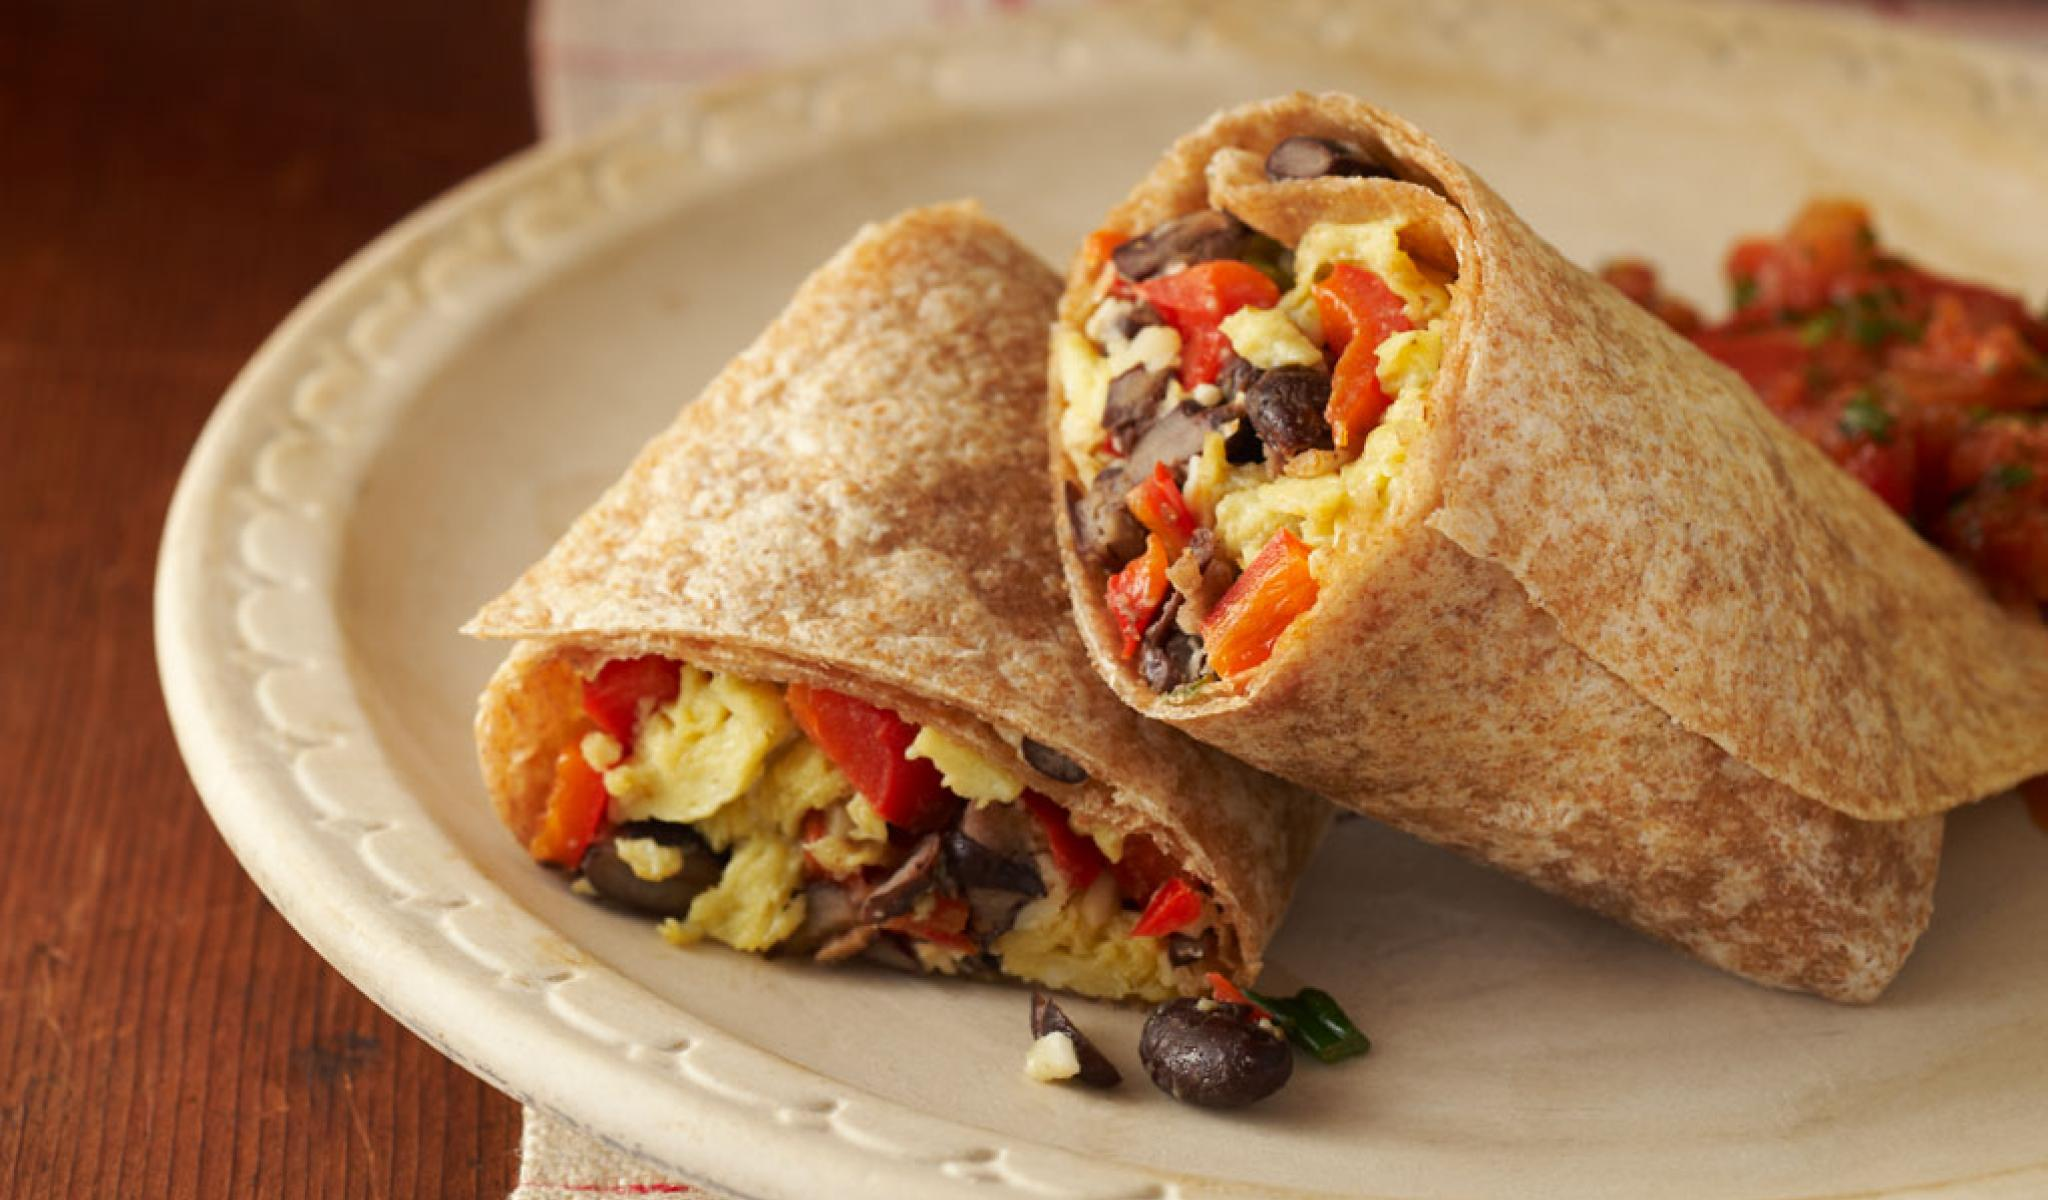 Hearty Egg Burritos      These filling burritos are perfect for any meal